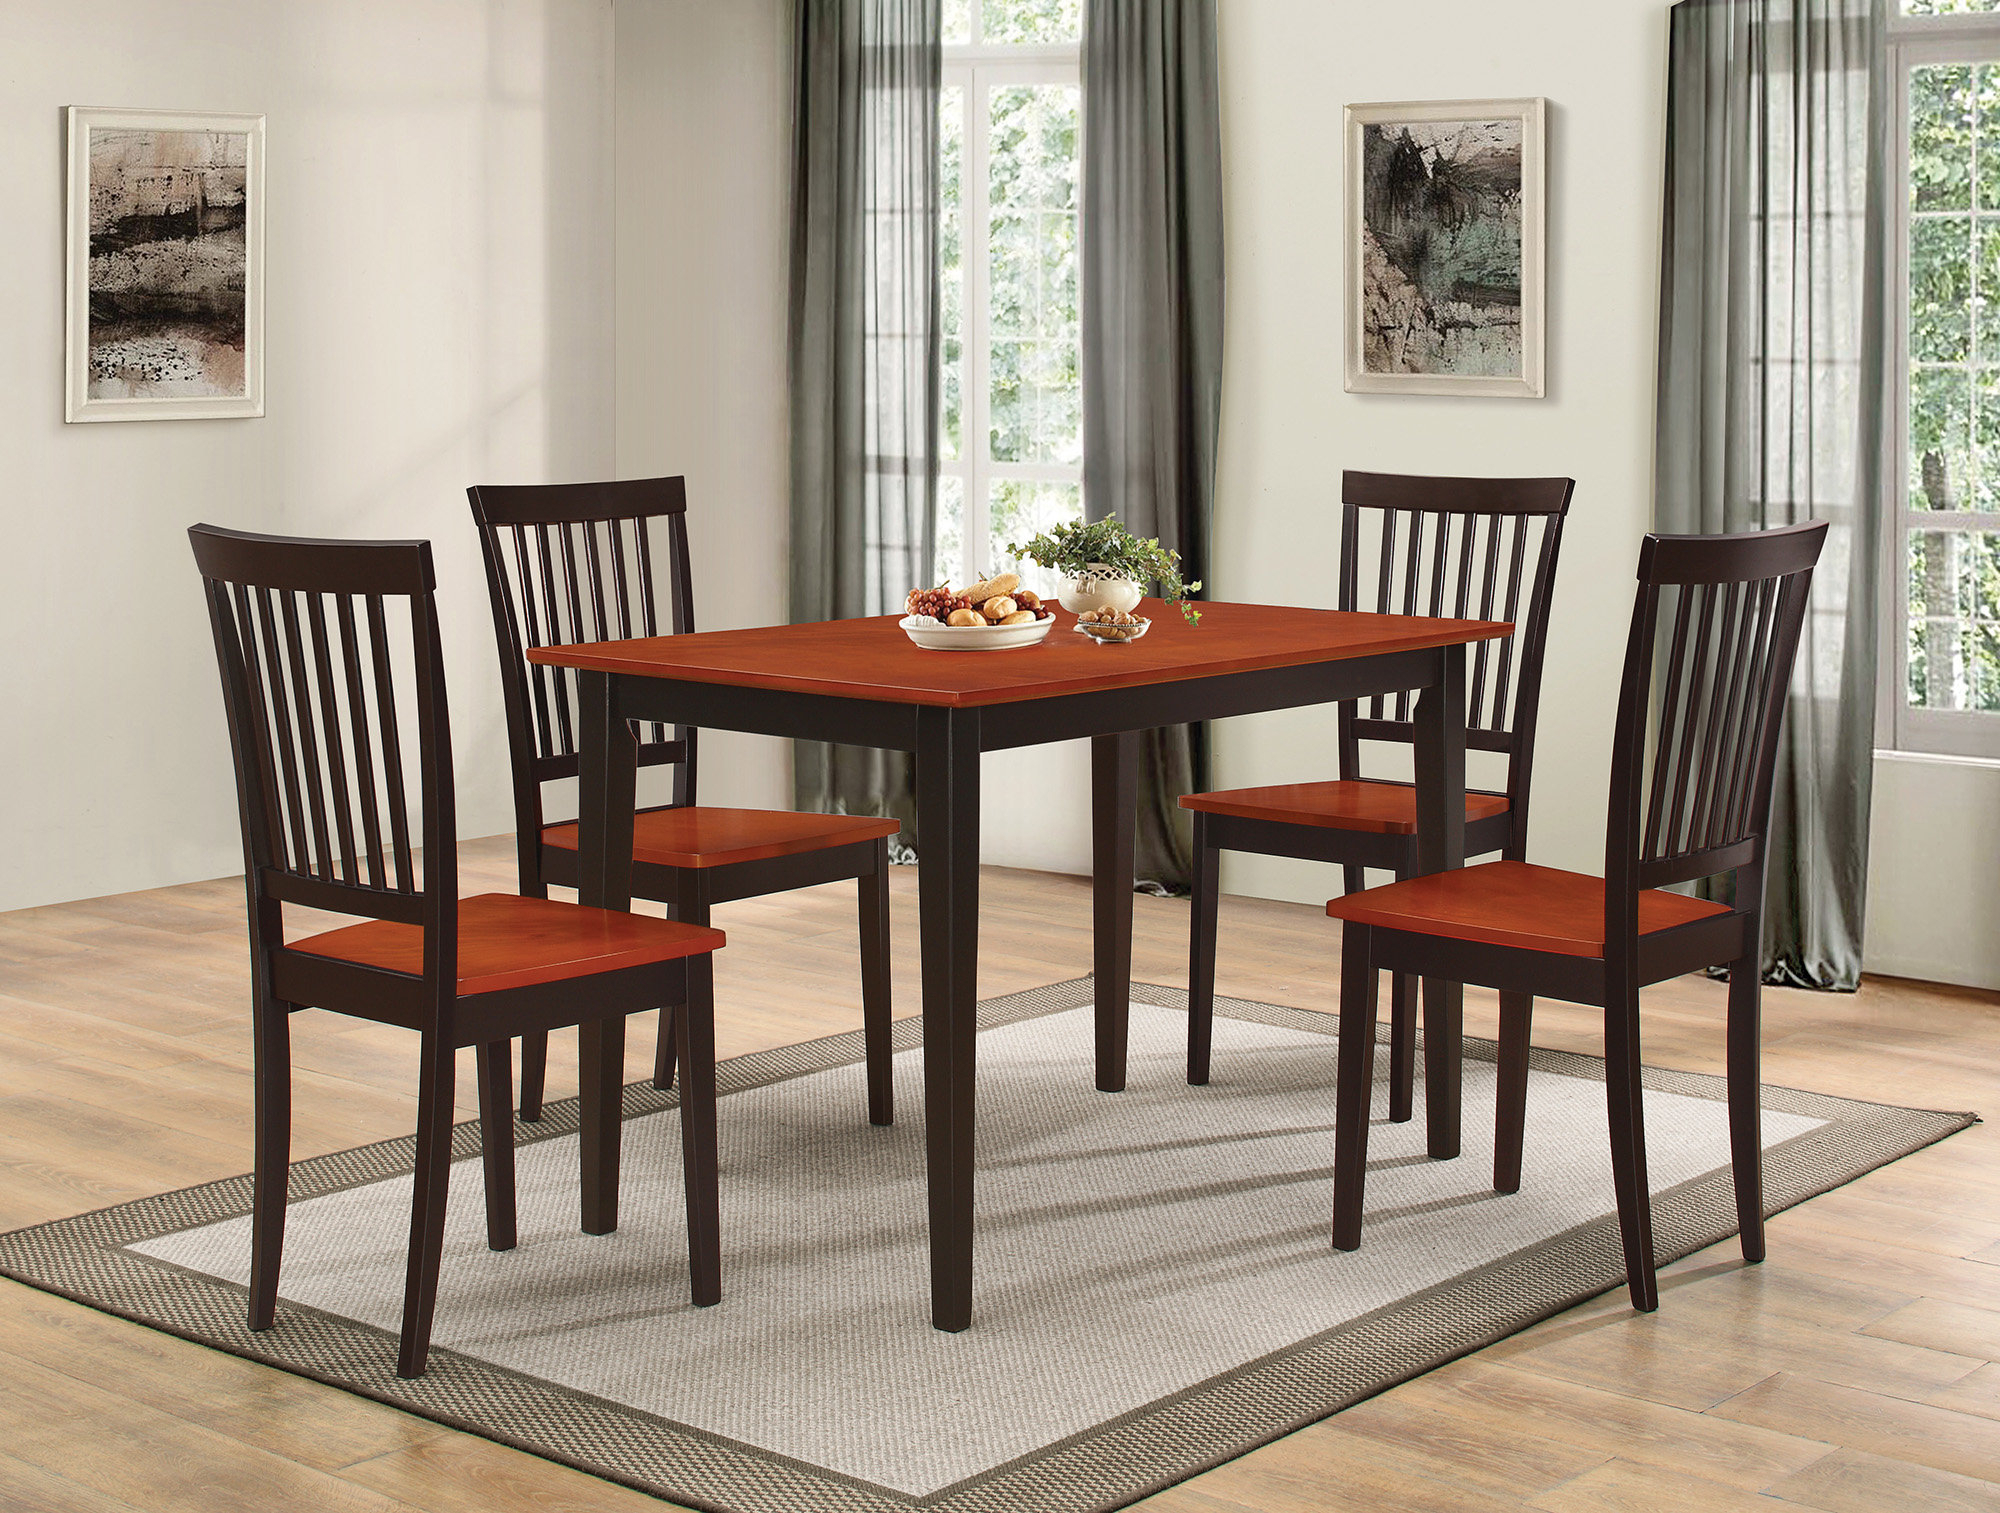 Pattonsburg 5 Piece Dining Set With Regard To Most Recent Pattonsburg 5 Piece Dining Sets (View 1 of 20)